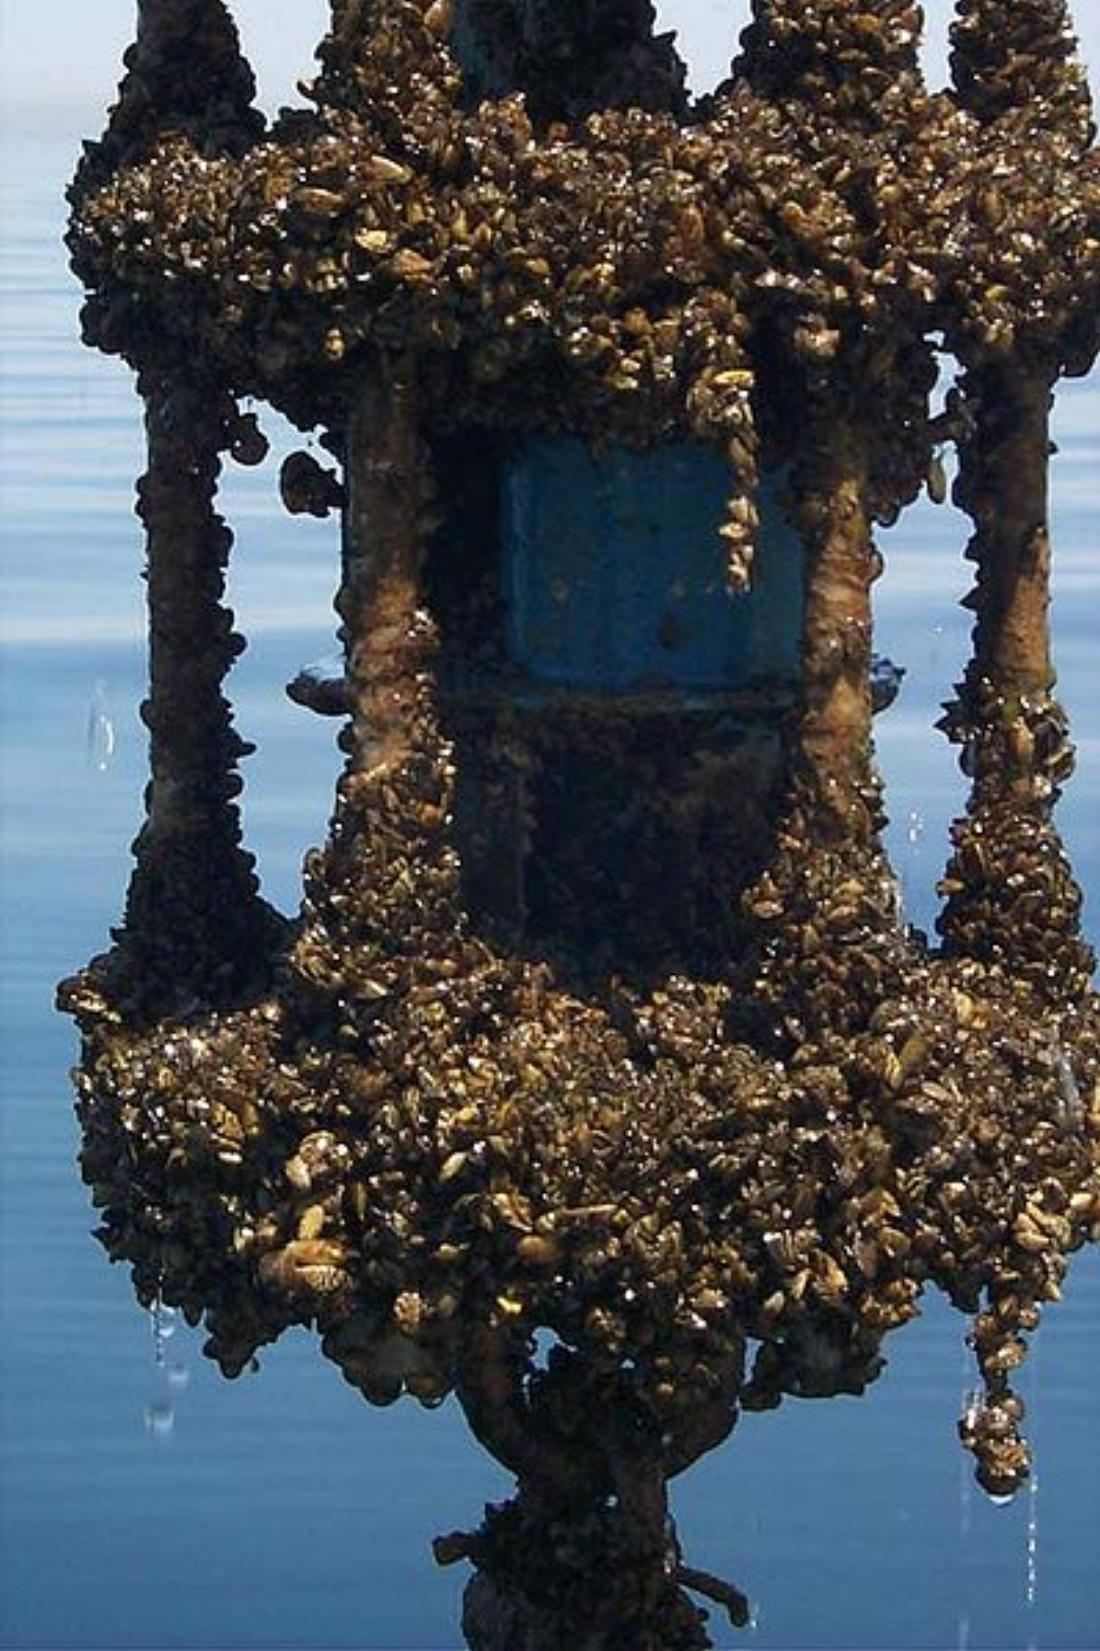 Zebra Mussels Suspected In Lake Worth And Joe Pool - Fort Worth Weekly